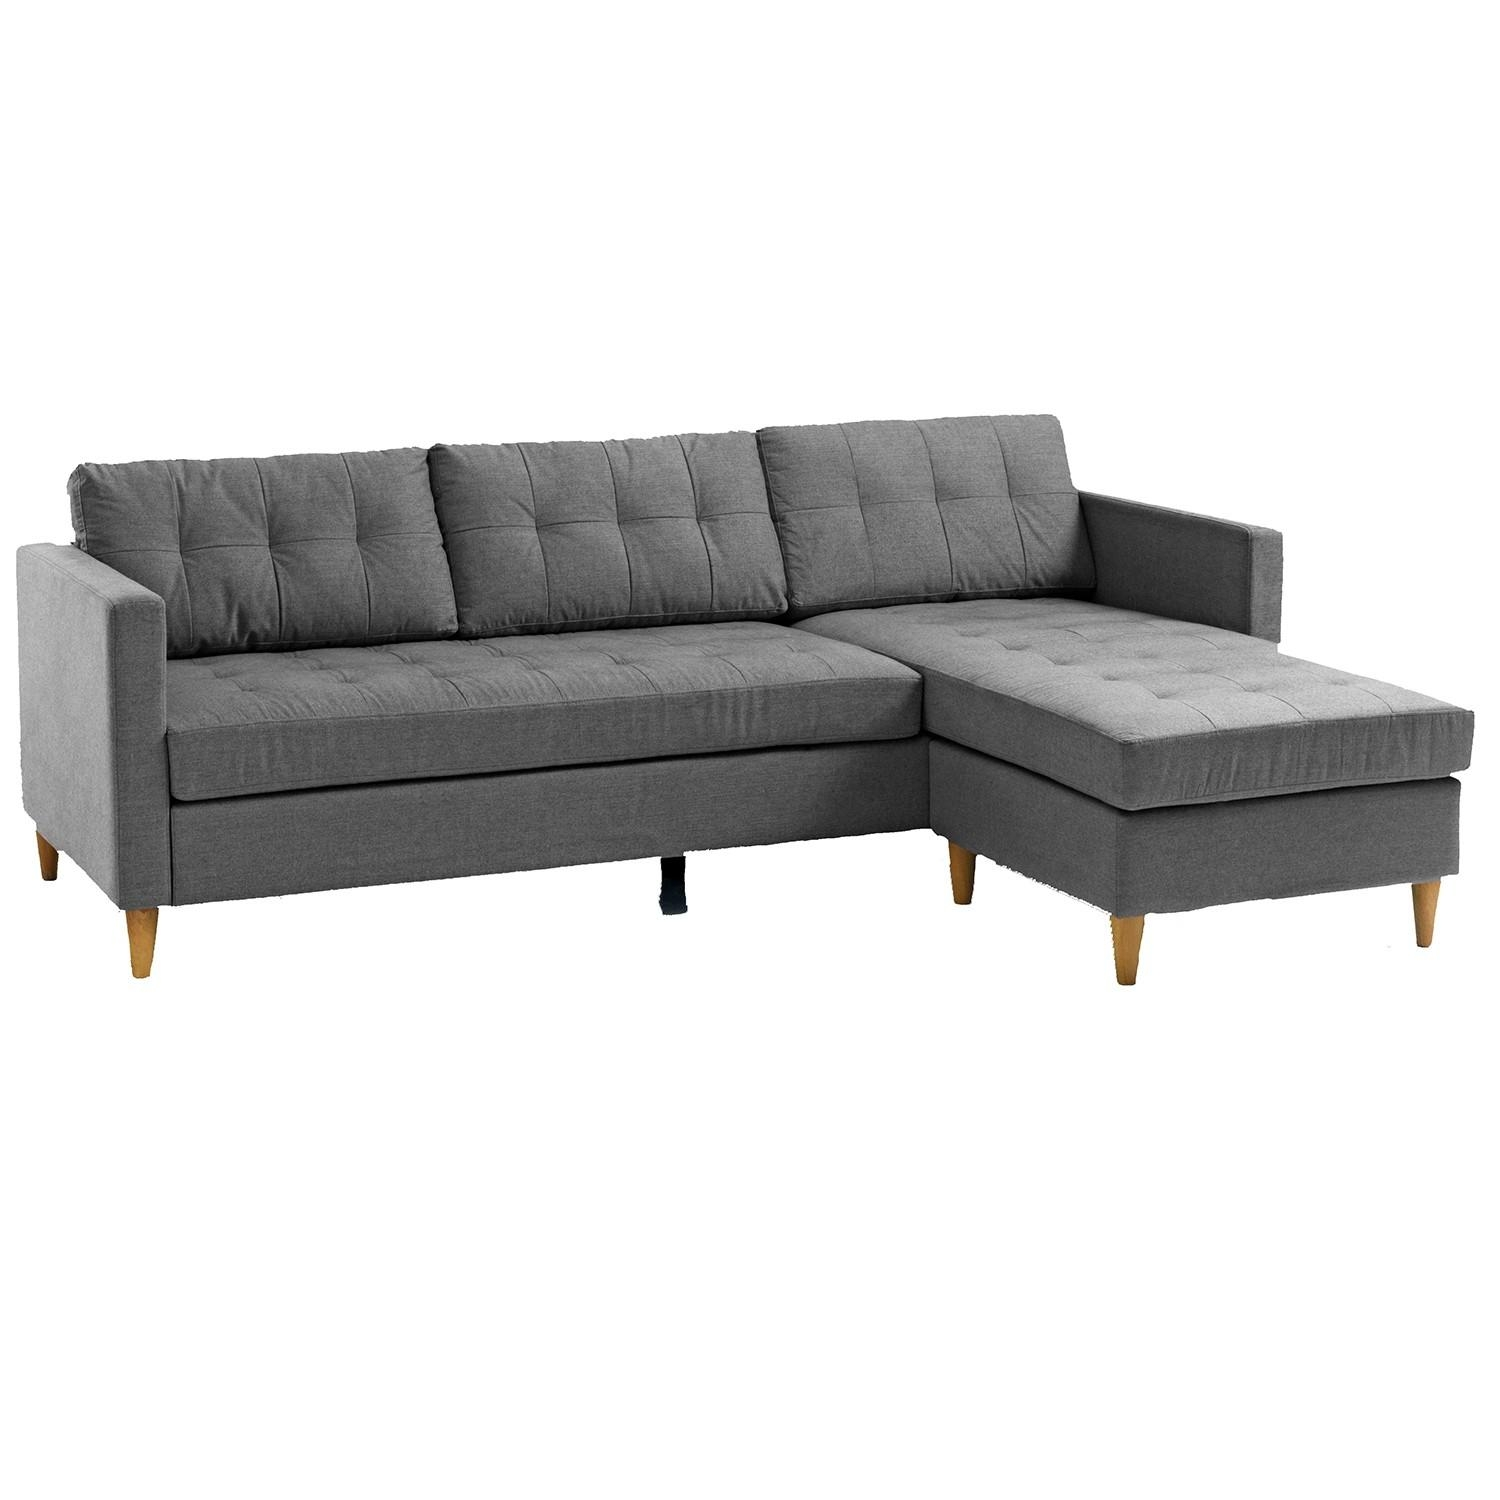 Falslev 3 Seater Sofa (Grey) | Sofas | Jysk Canada With Three Seater Sofas (Image 9 of 20)